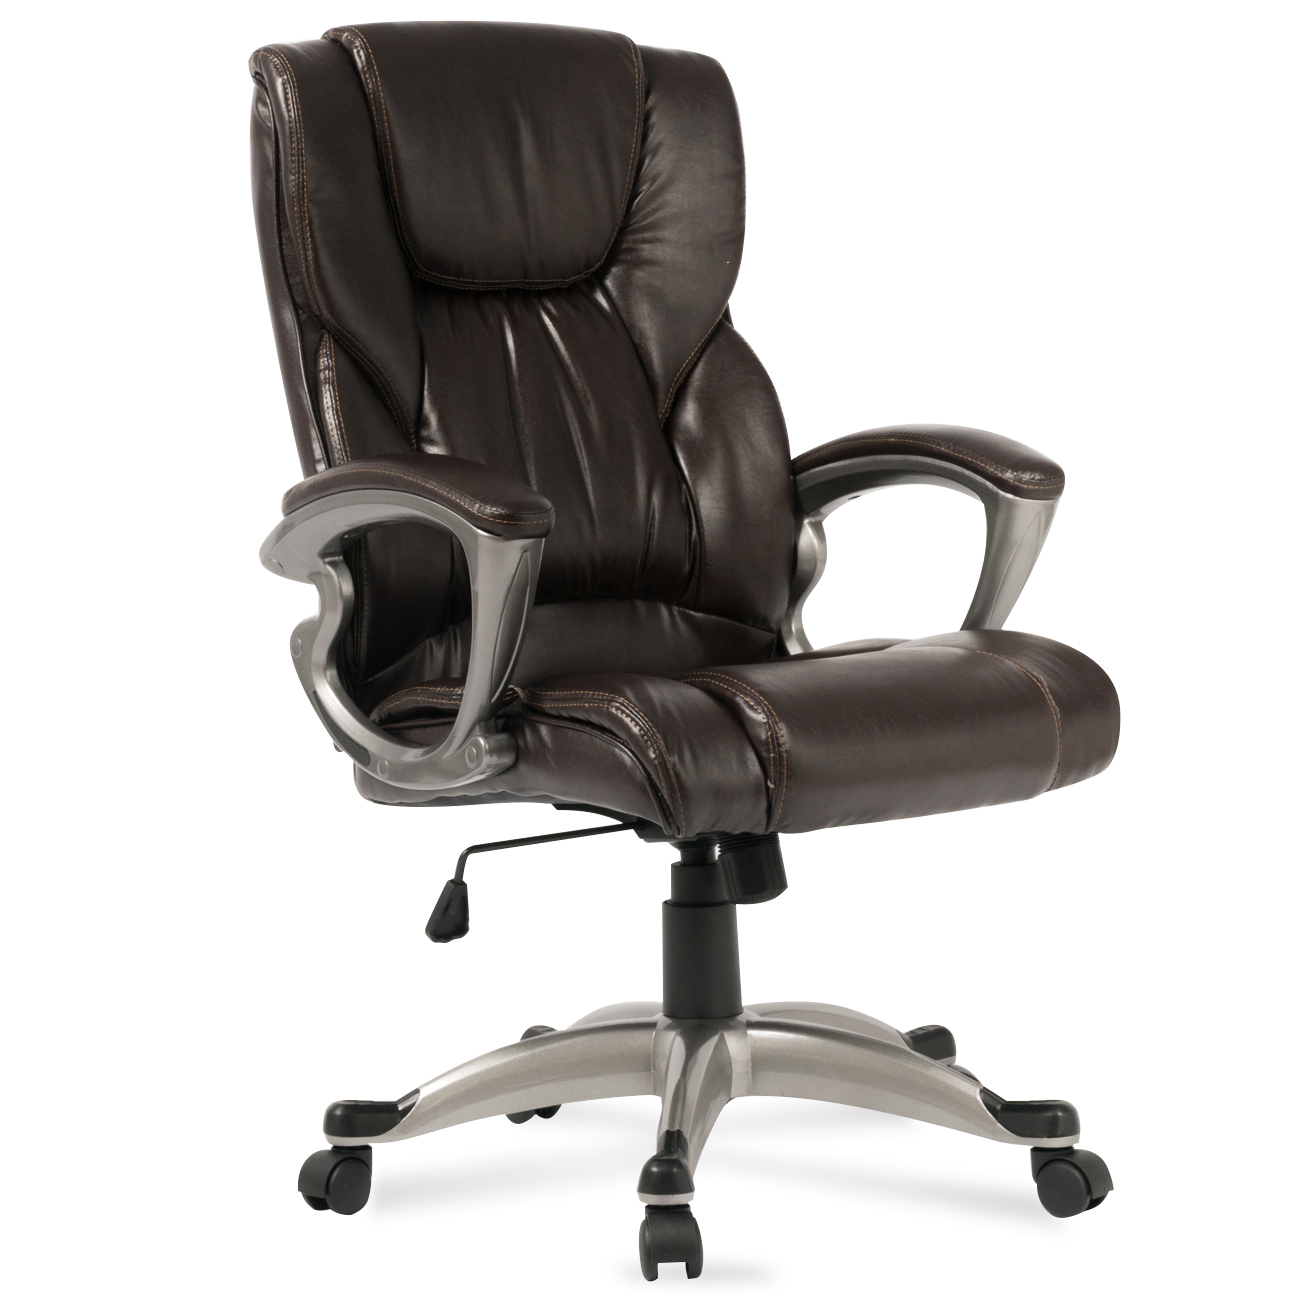 executive office chair high back task ergonomic computer. Black Bedroom Furniture Sets. Home Design Ideas